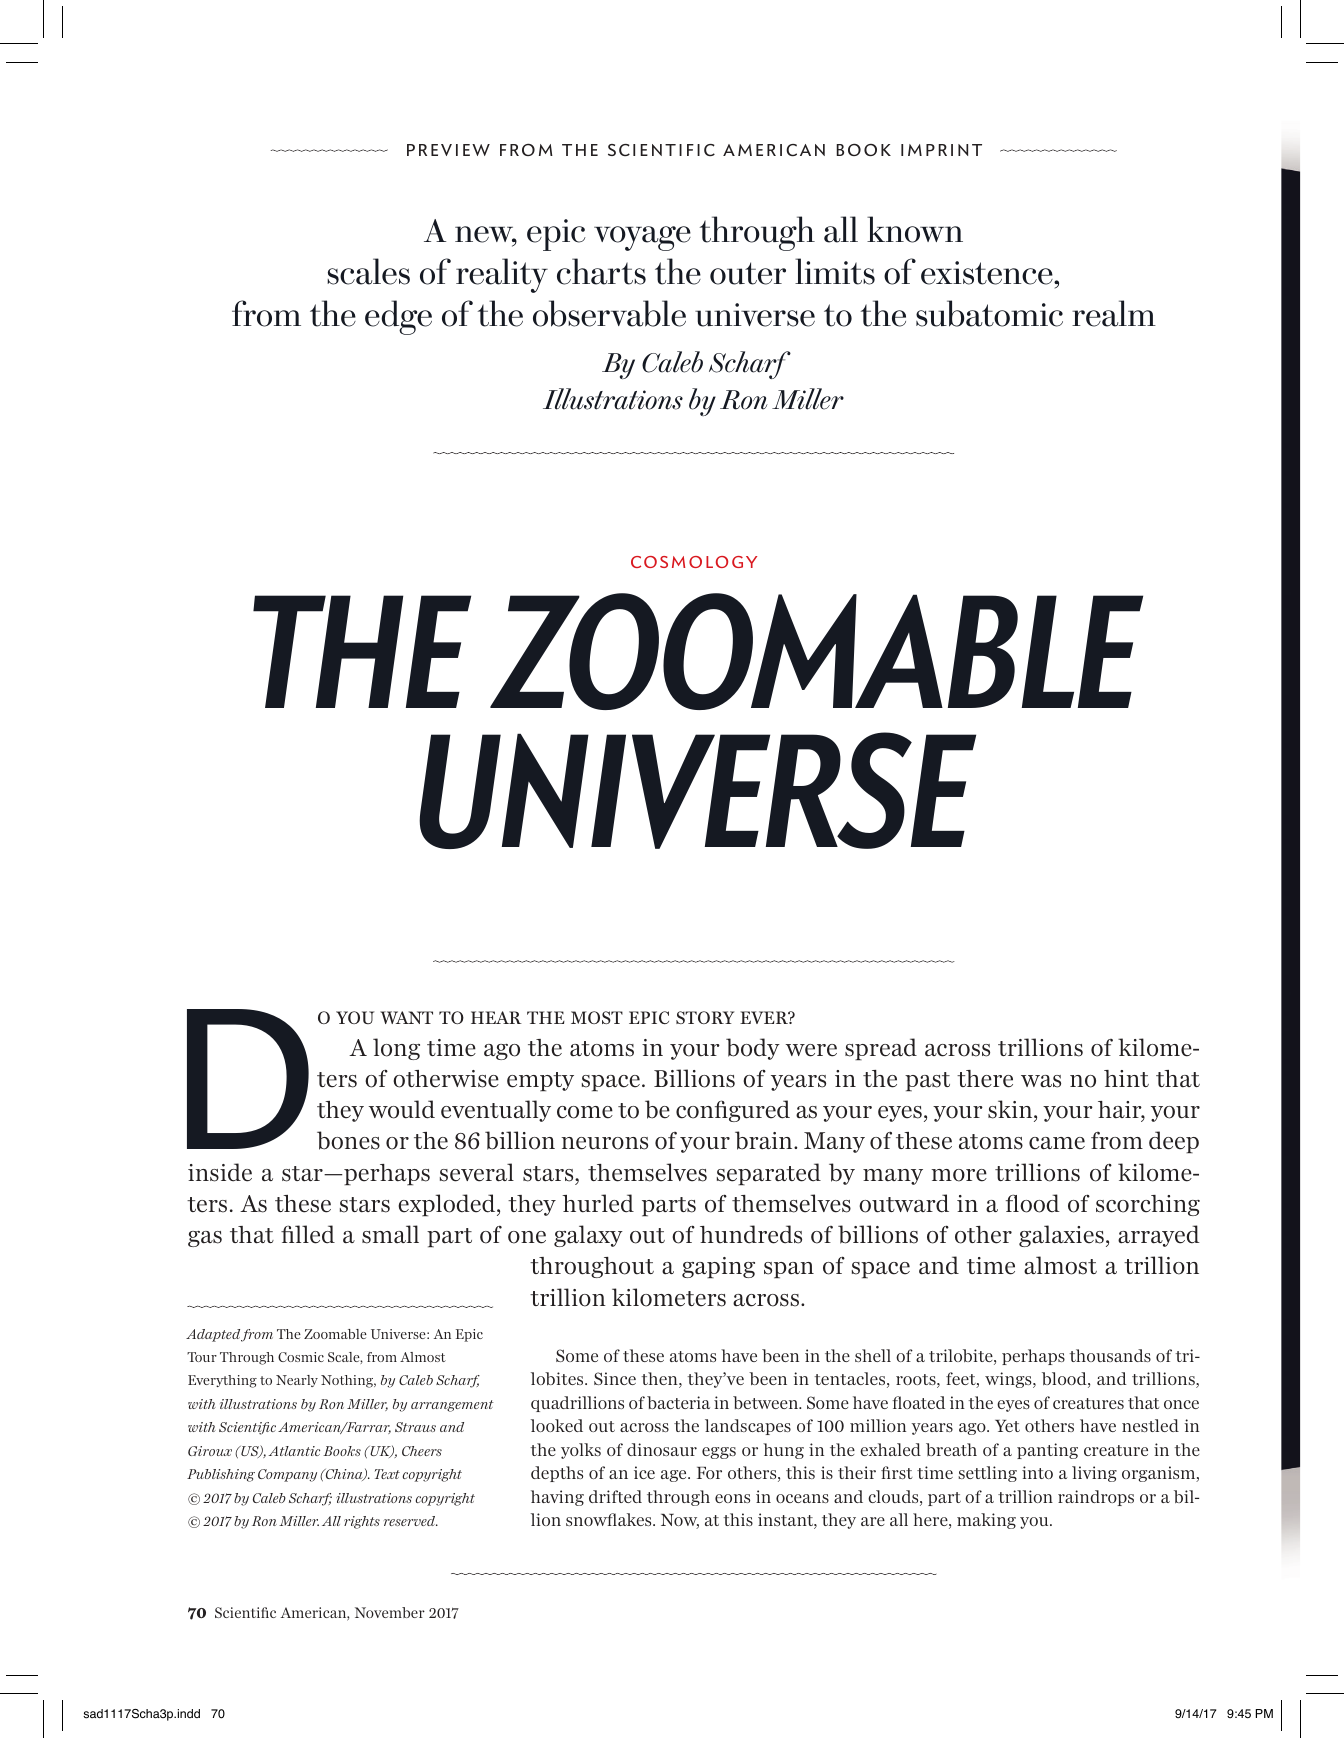 from Almost Everything to Nearly Nothing The Zoomable Universe An Epic Tour Through Cosmic Scale